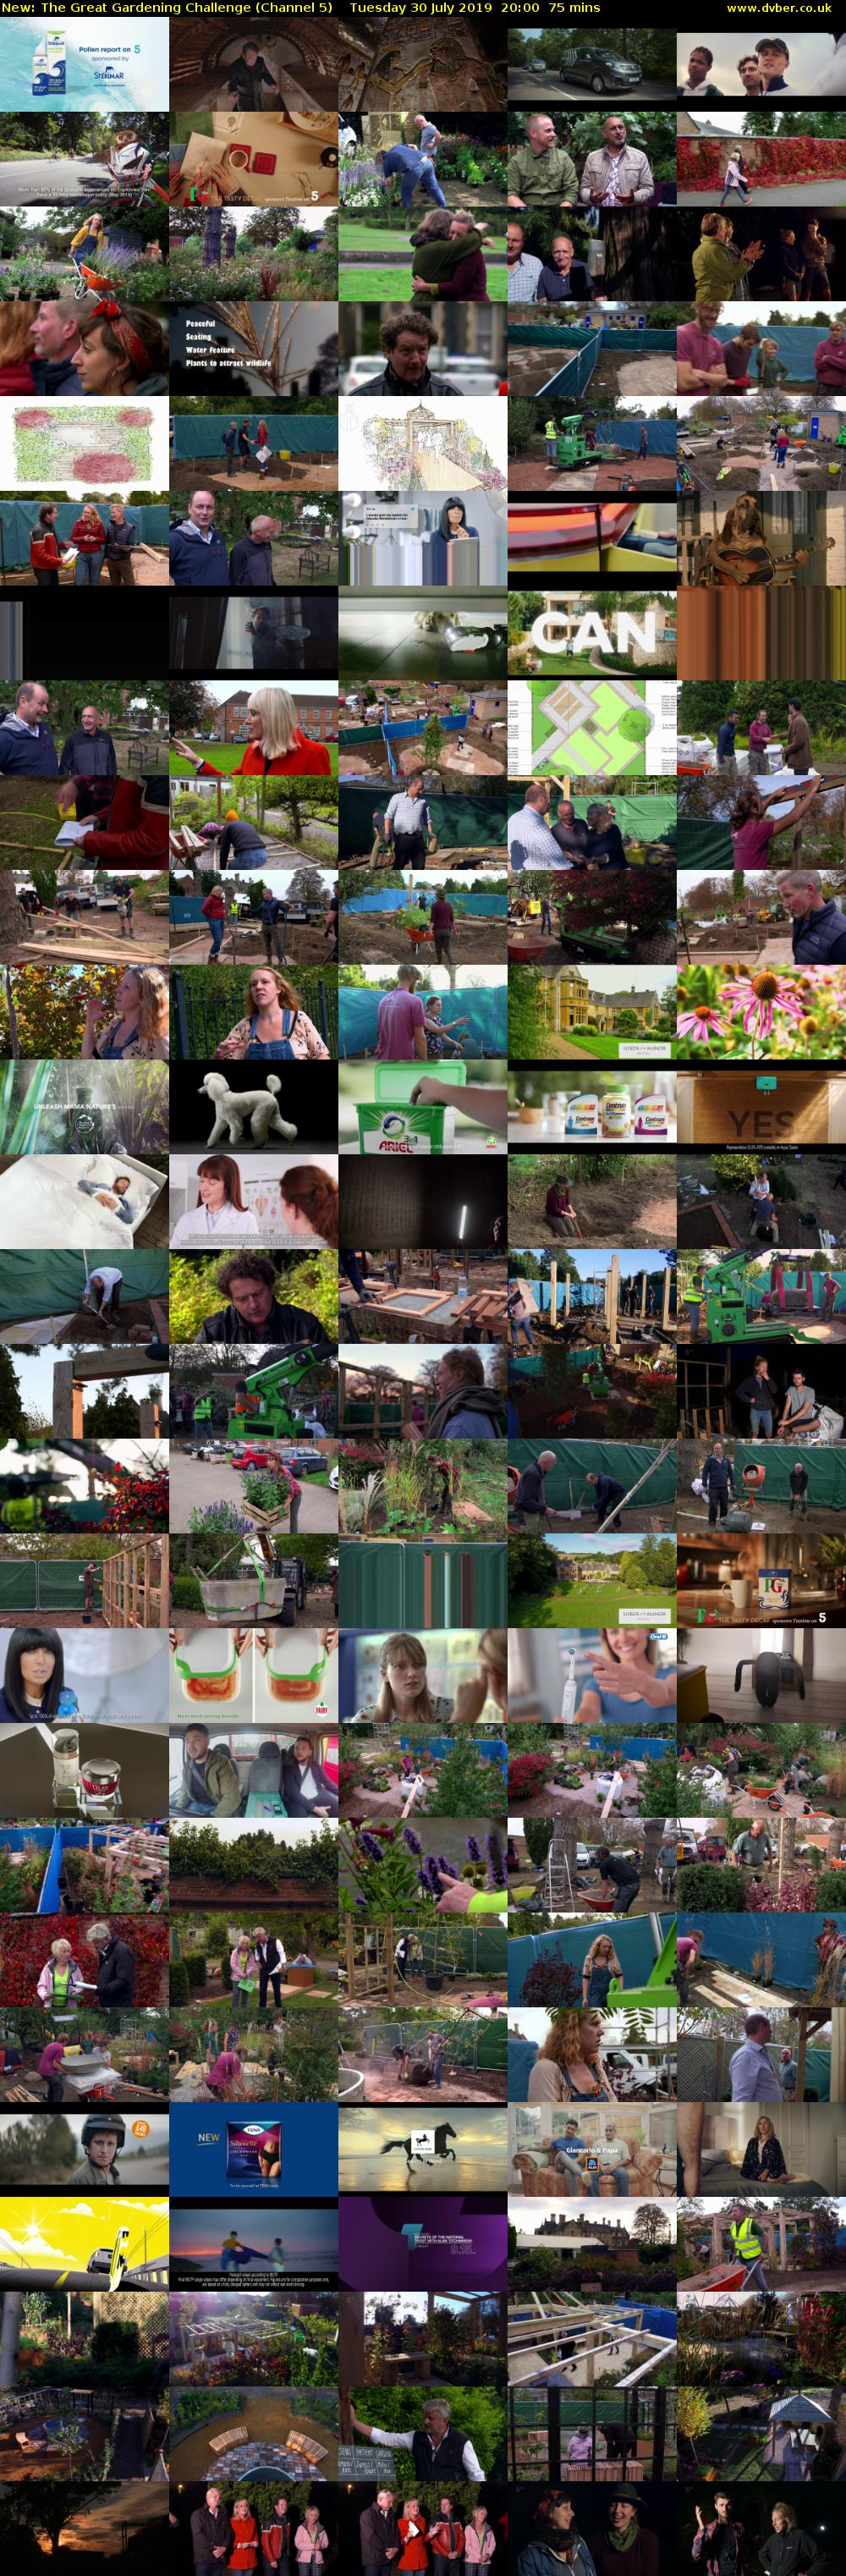 The Great Gardening Challenge (Channel 5) Tuesday 30 July 2019 20:00 - 21:15